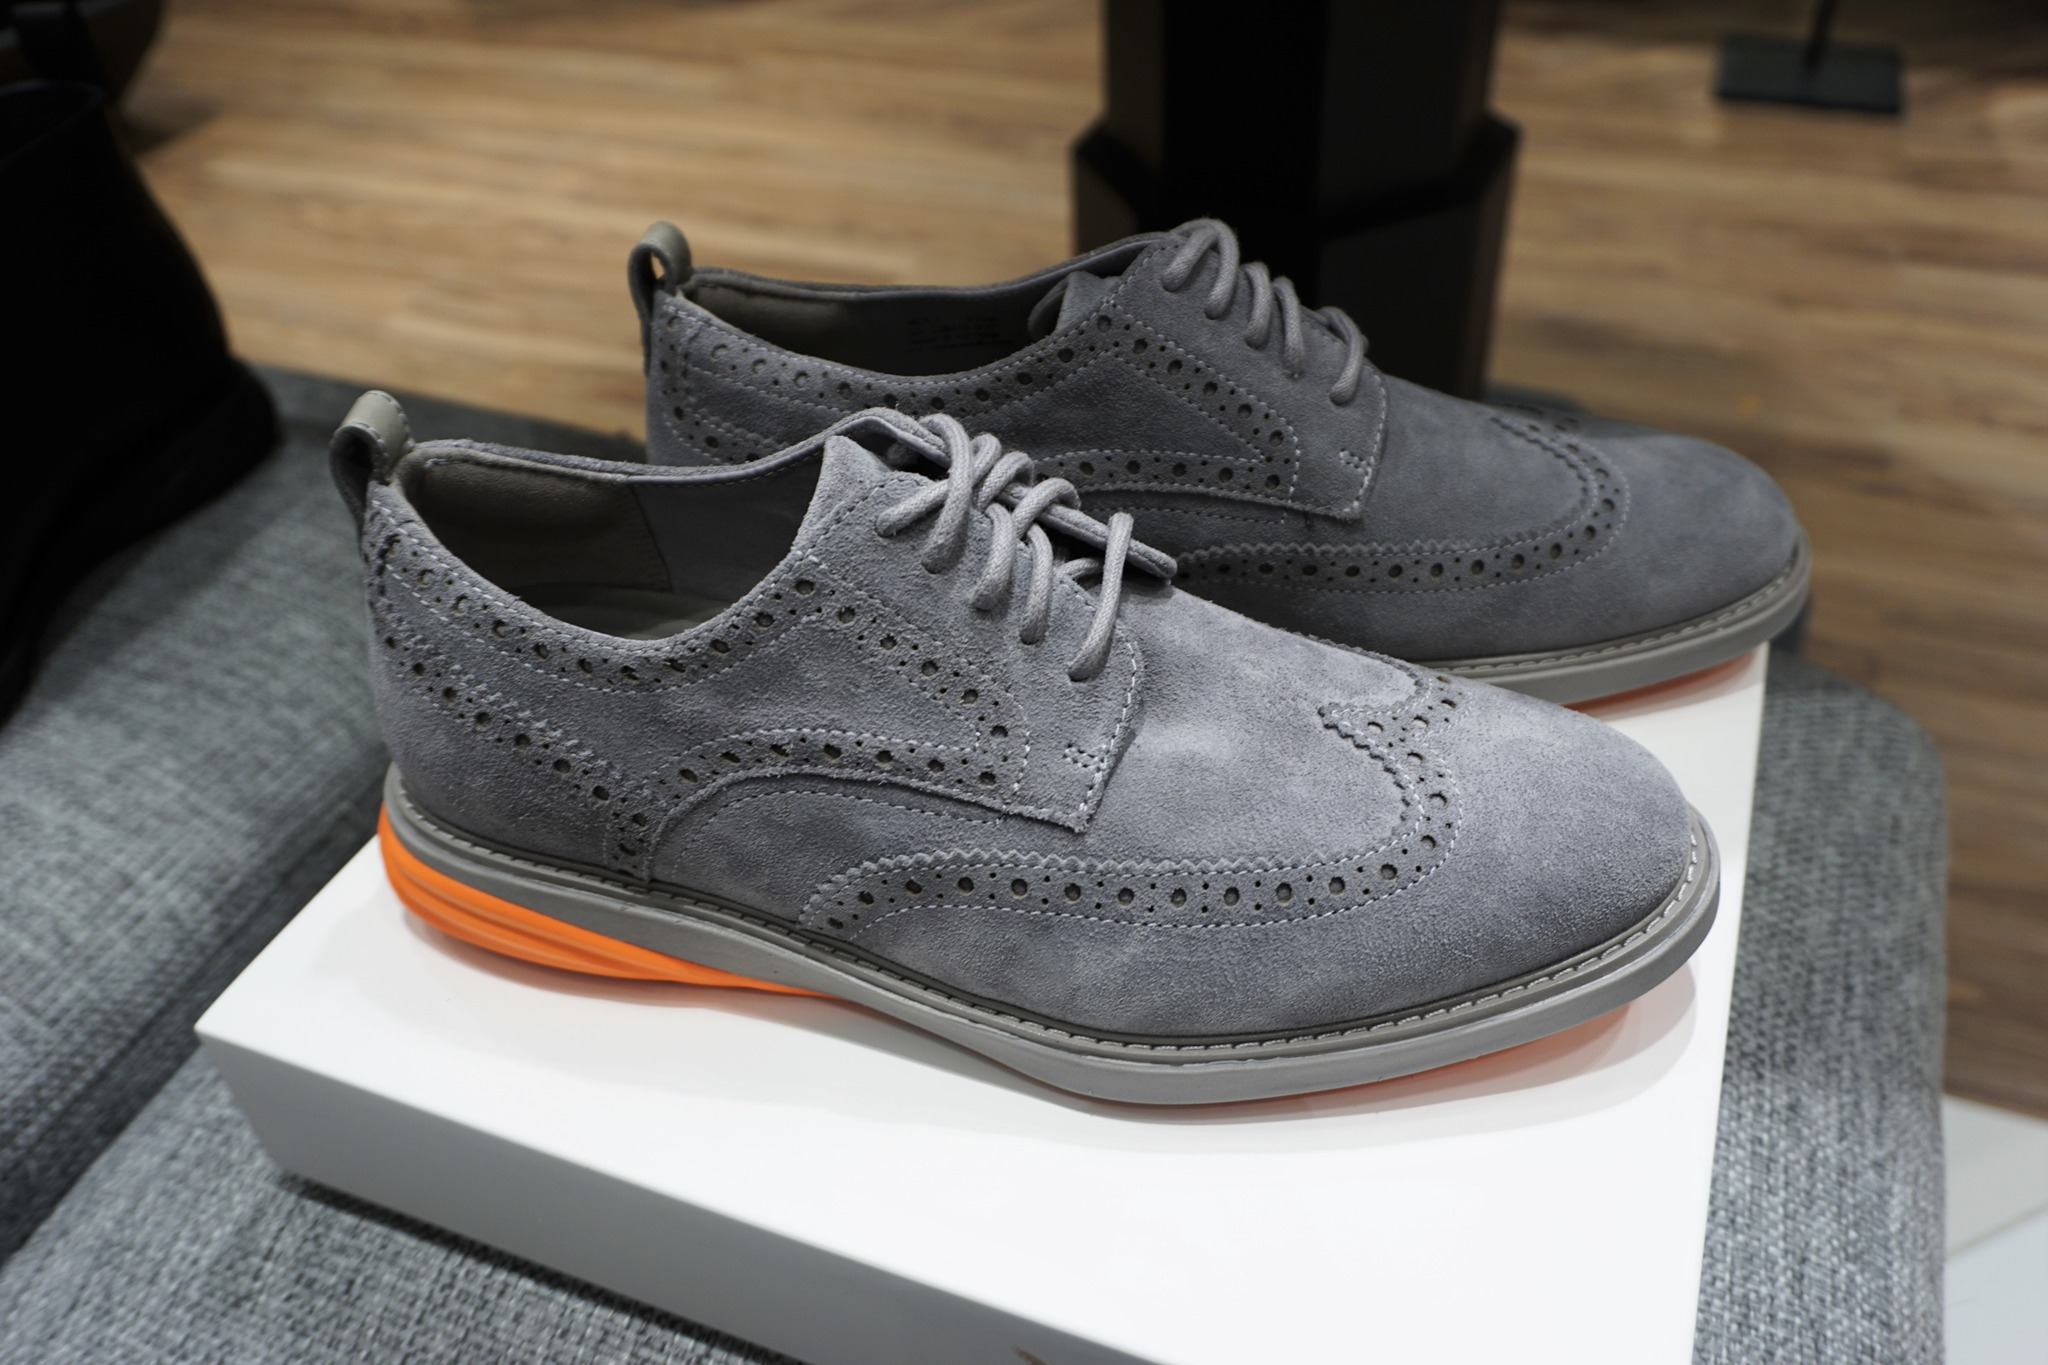 And also here are a few more Cole Haan shoes from last season which still  look good. Some of these pairs are actually on sale.